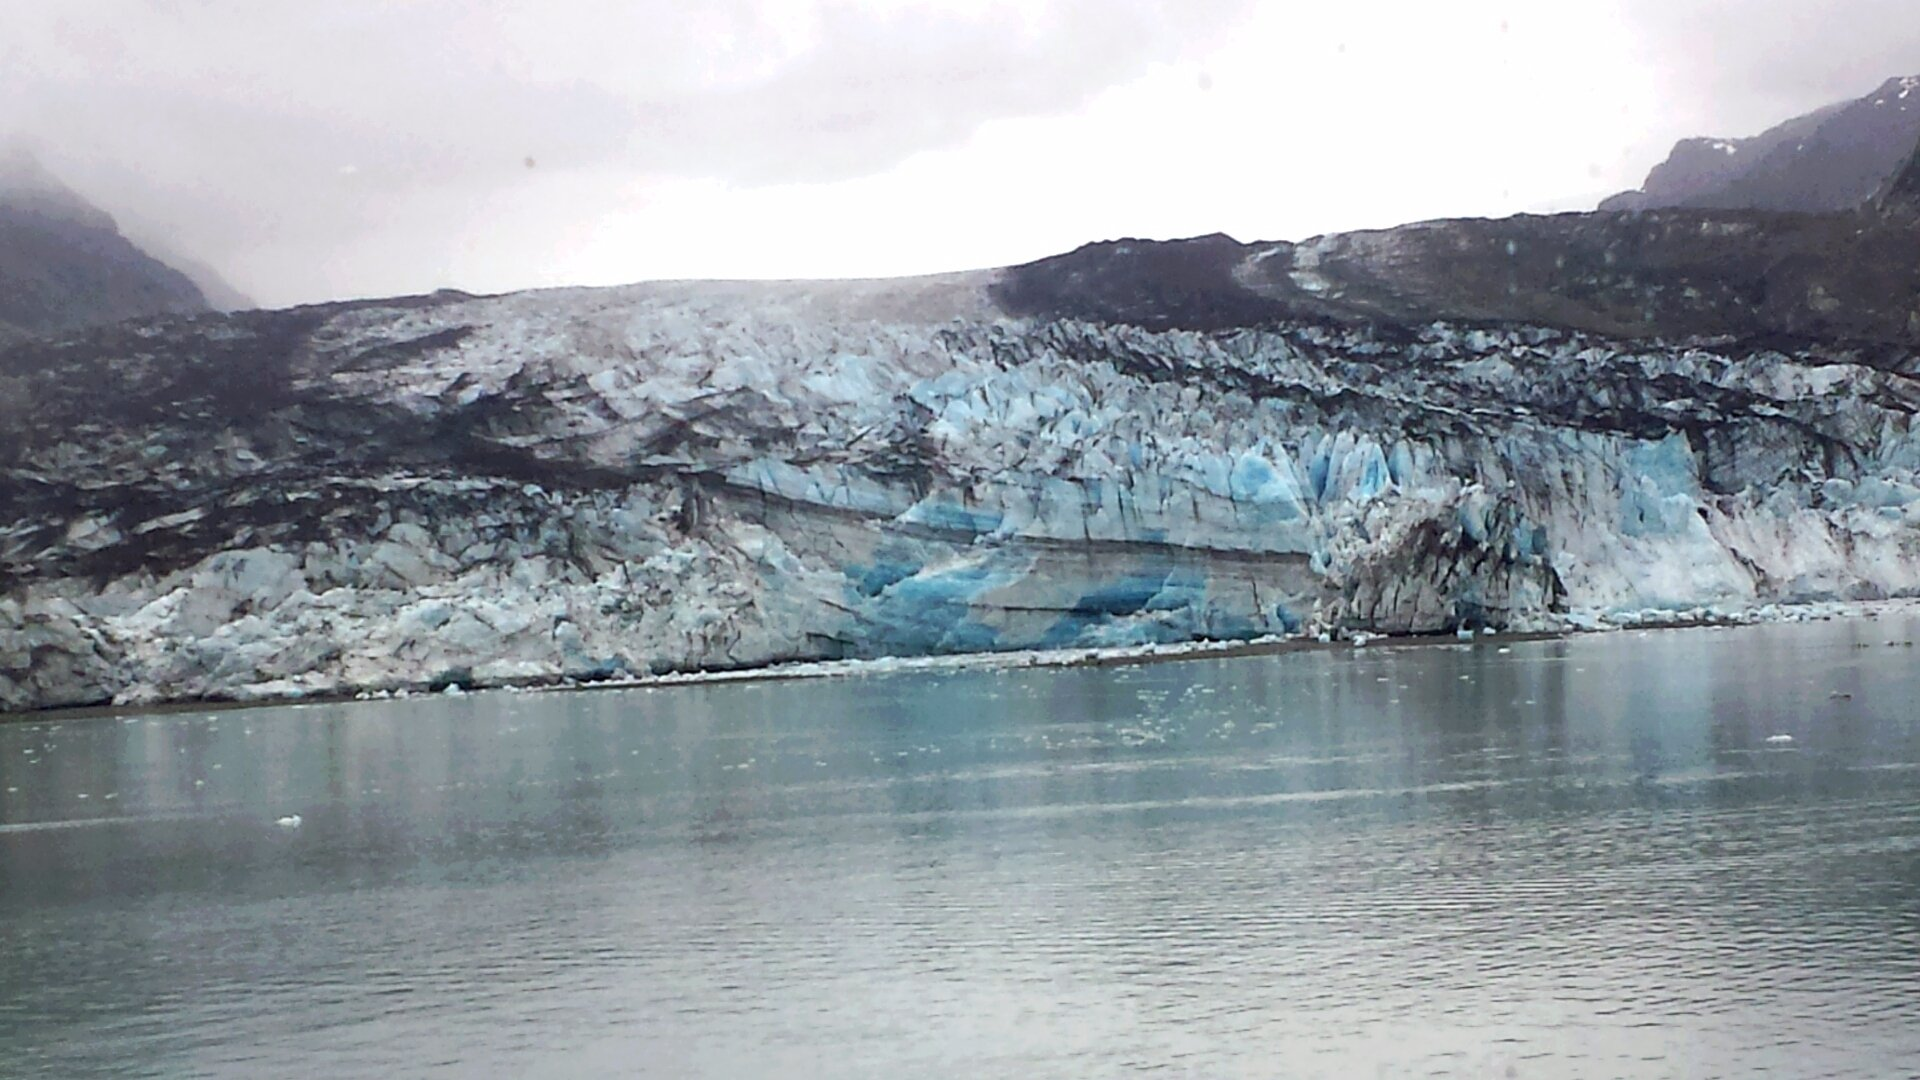 View of one of the glaciers